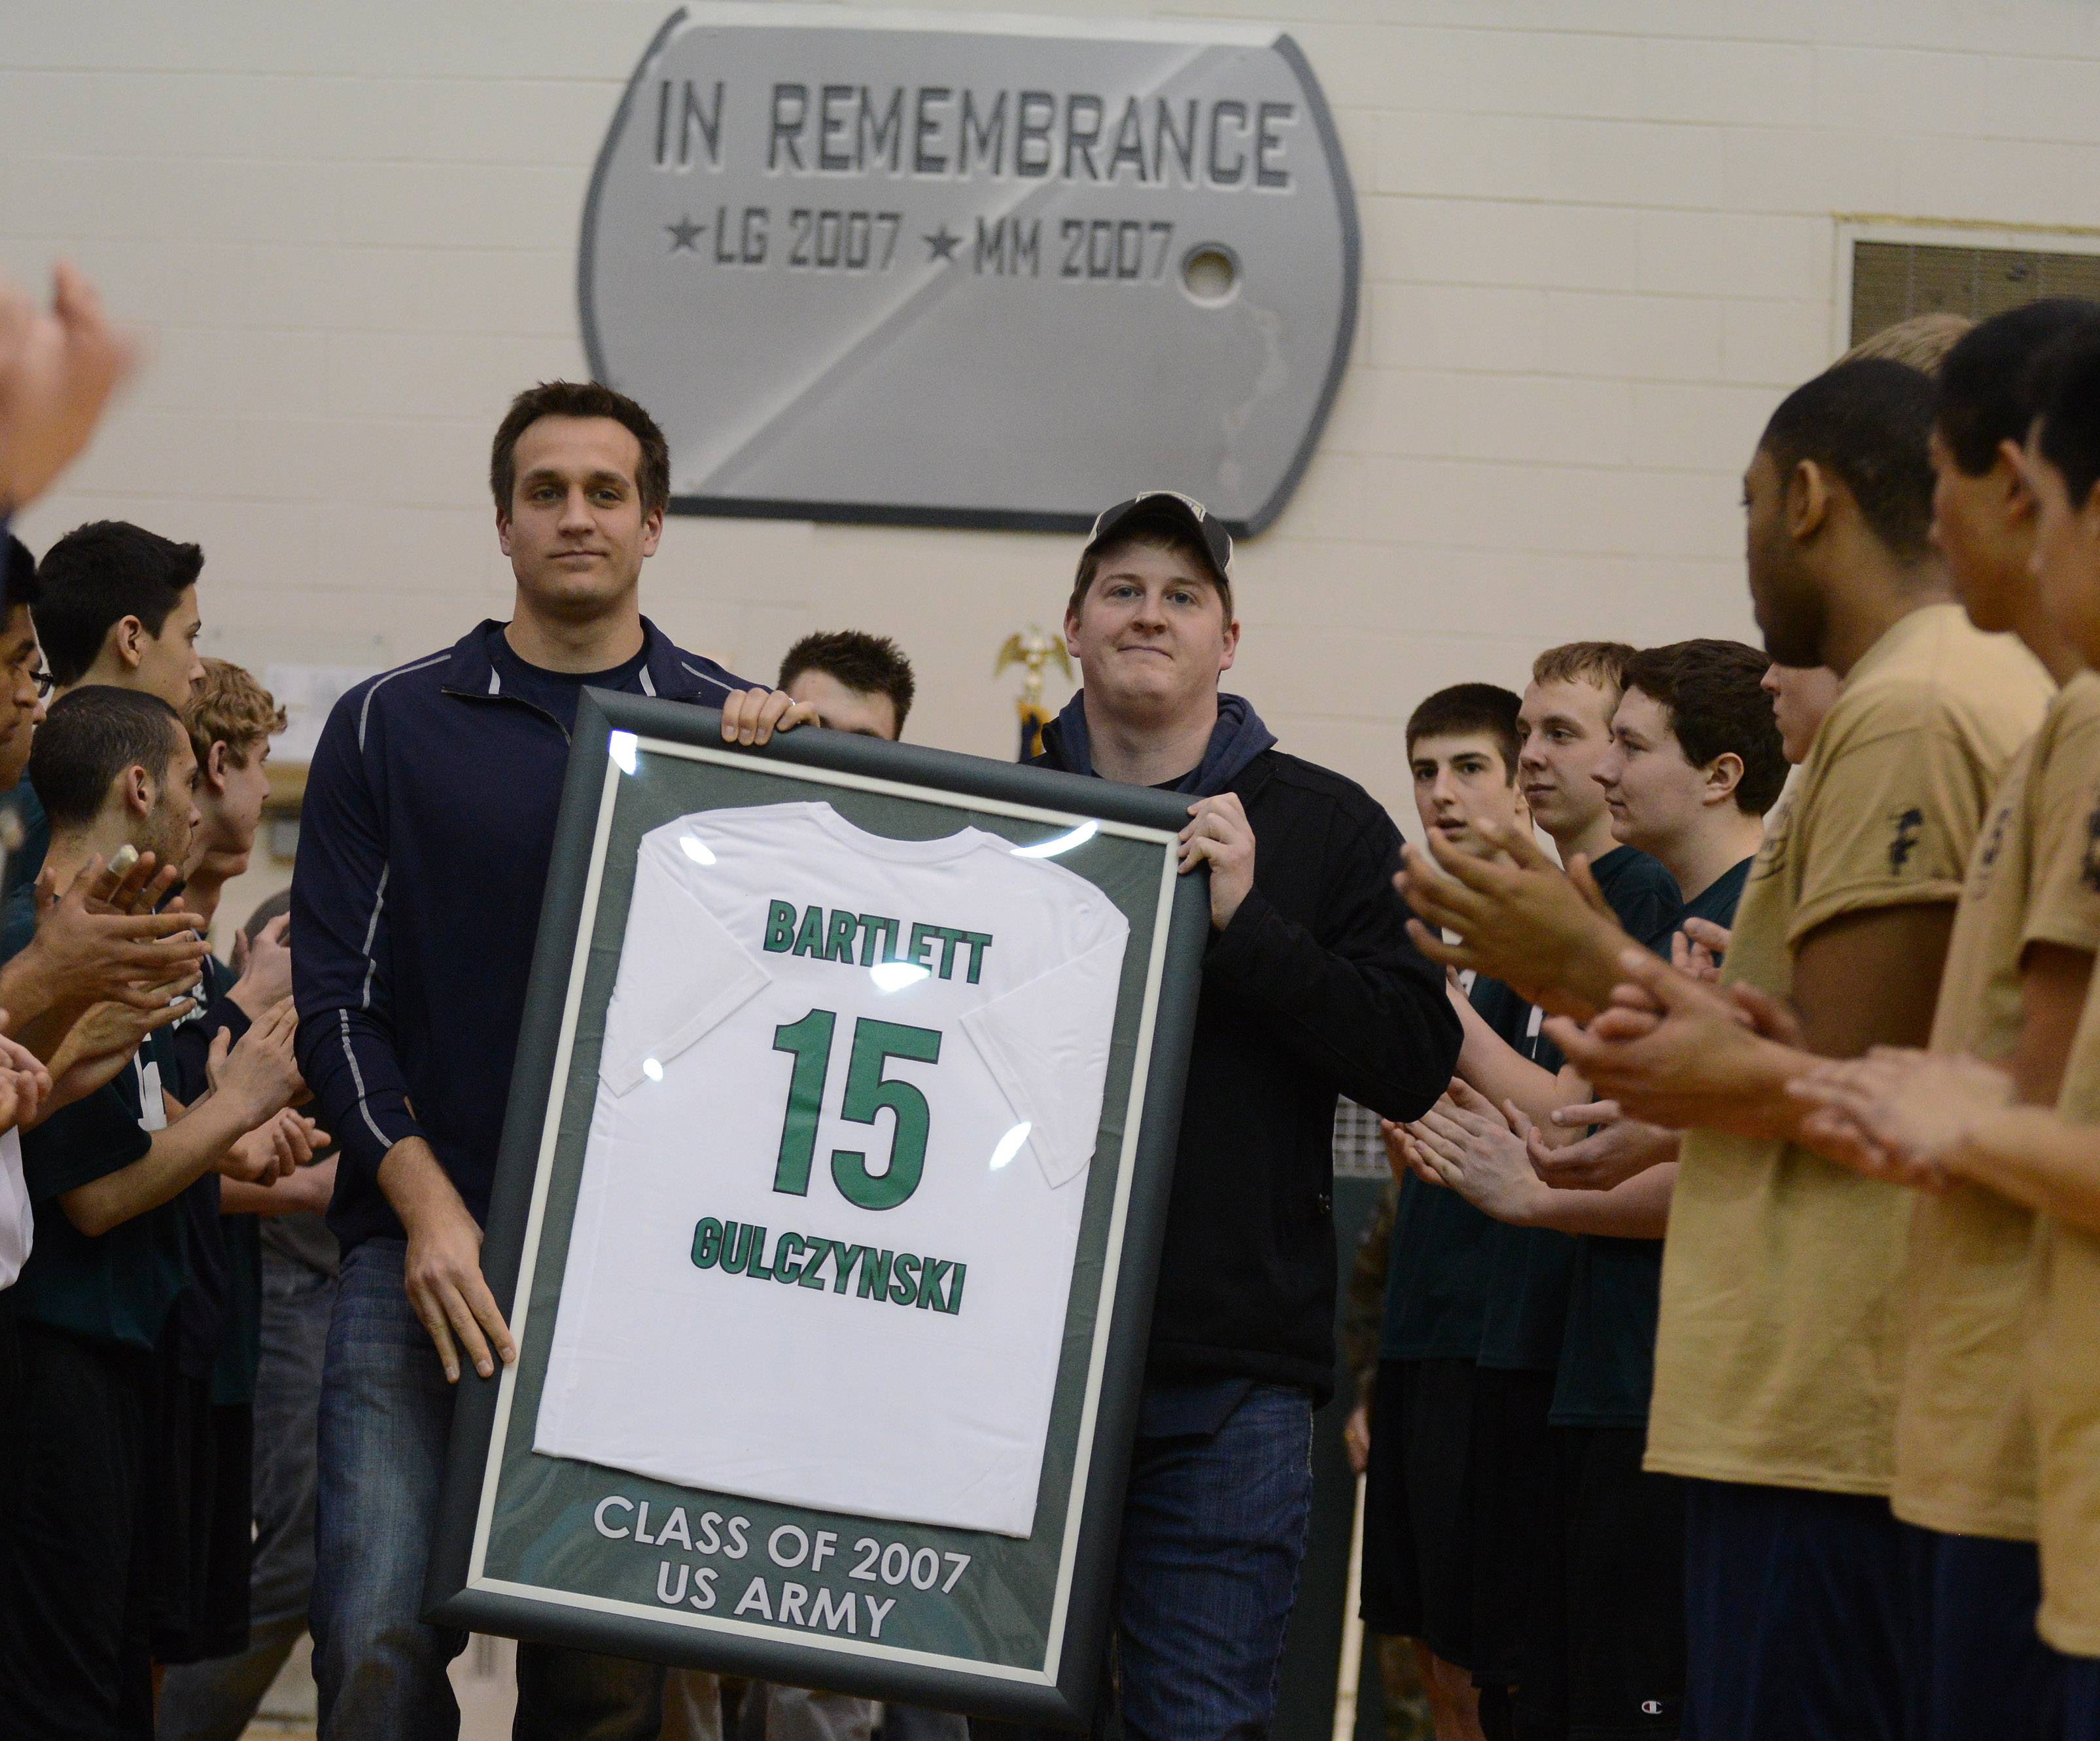 Former Bartlett High volleyball teammates Billy Sahagian, left, and Chris Maloney carry out the retired #15 jersey Thursday of Lenny Gulczynski, a 2007 grad who died while serving in the Army in Iraq in 2008.